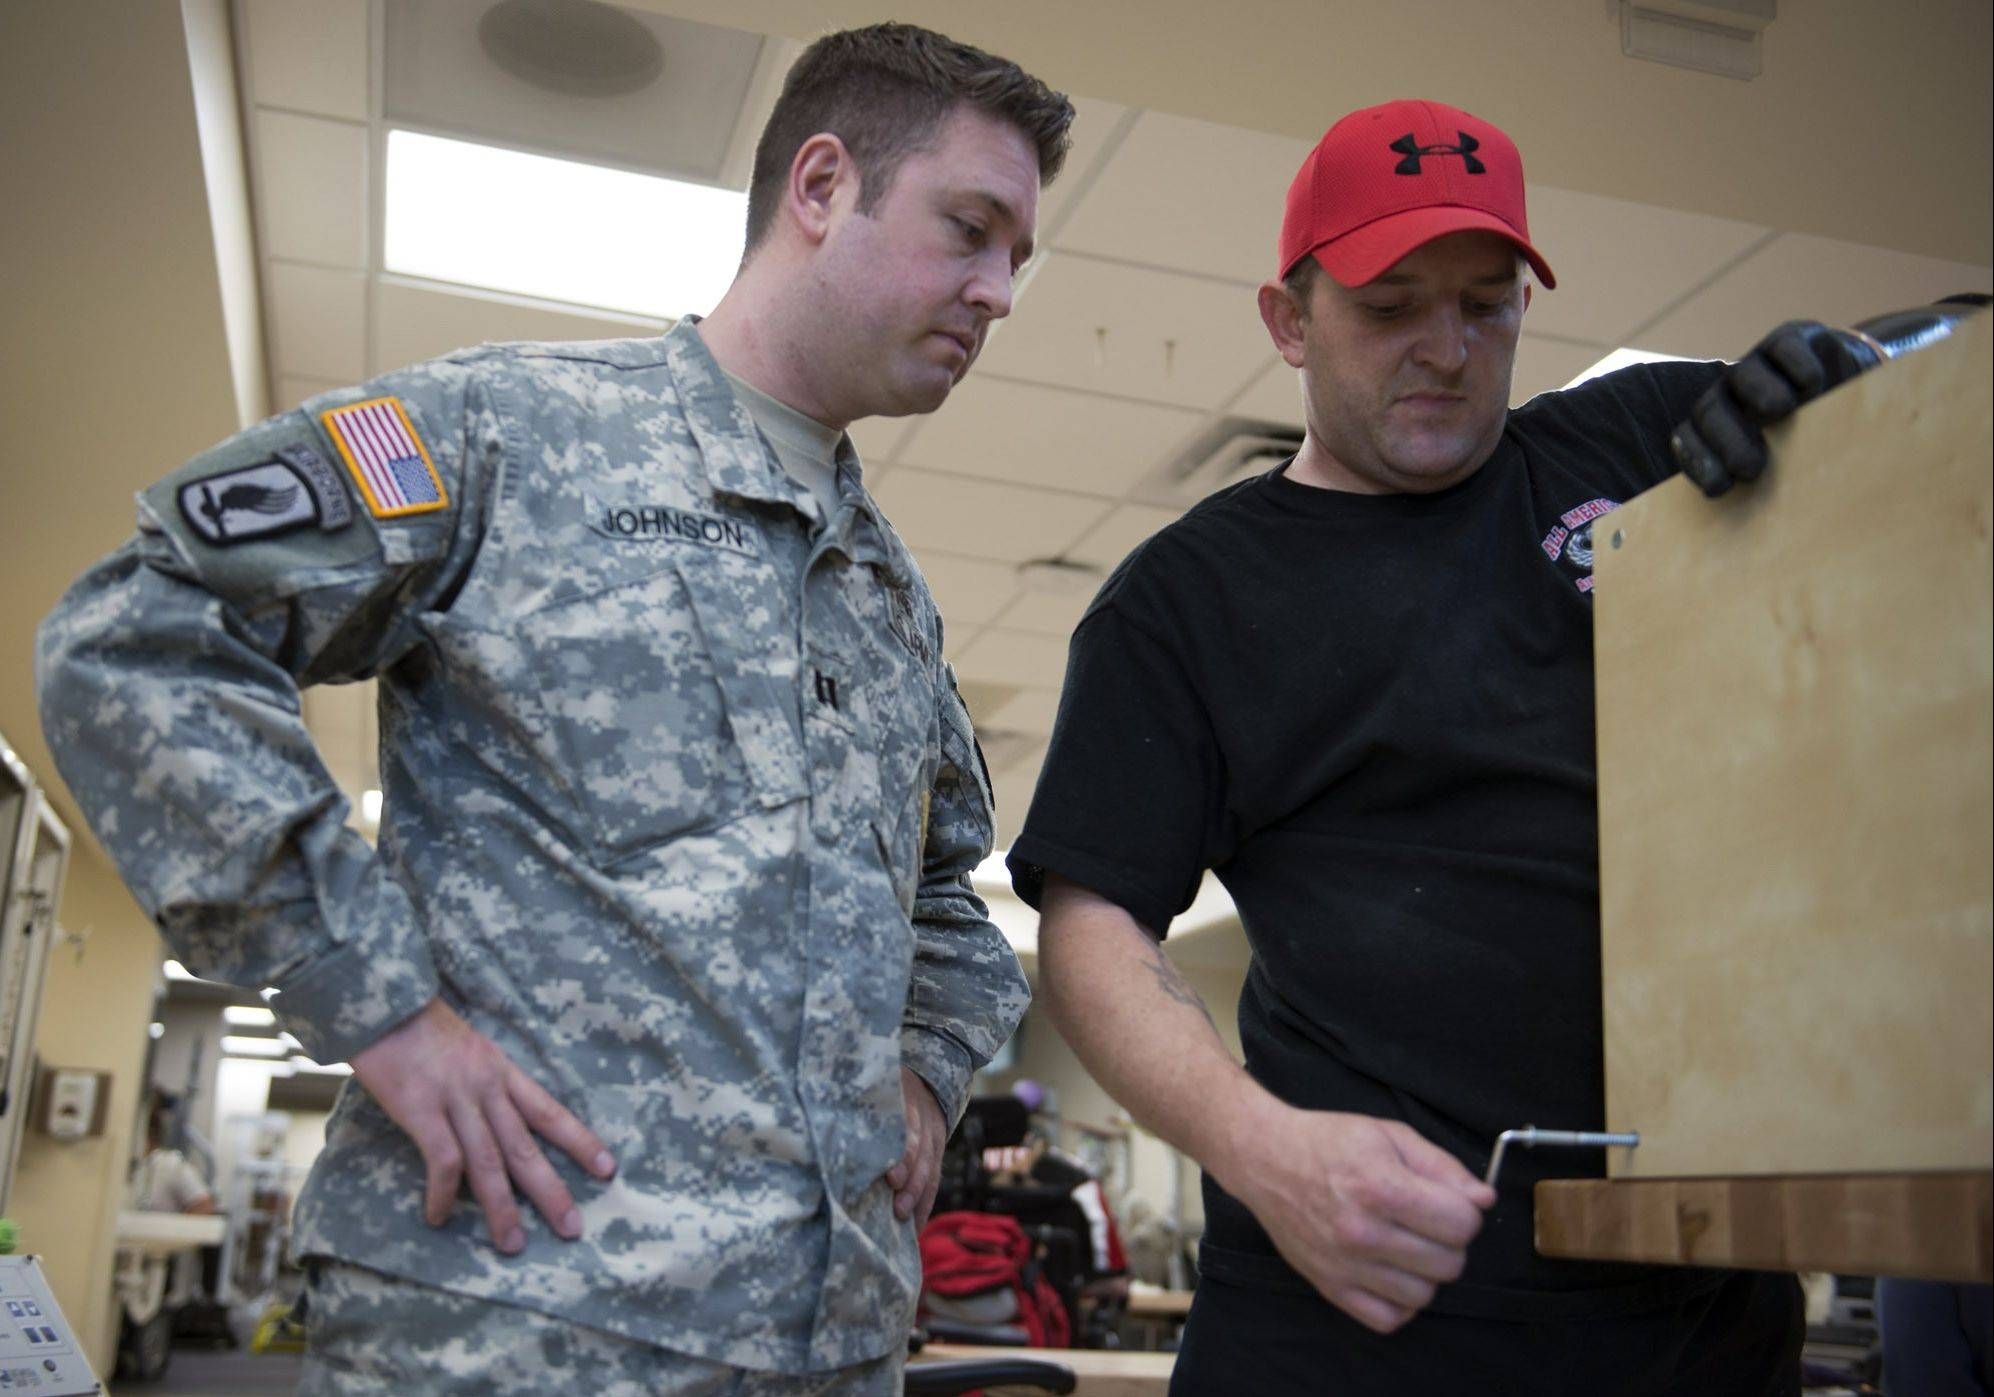 Captain Erik S. Johnson, left, an Army occupational therapist, works with wounded warriors like Army Sargeant Monte Bernardo, helping them achieve some of the things they used to do before receiving their severe injuries.